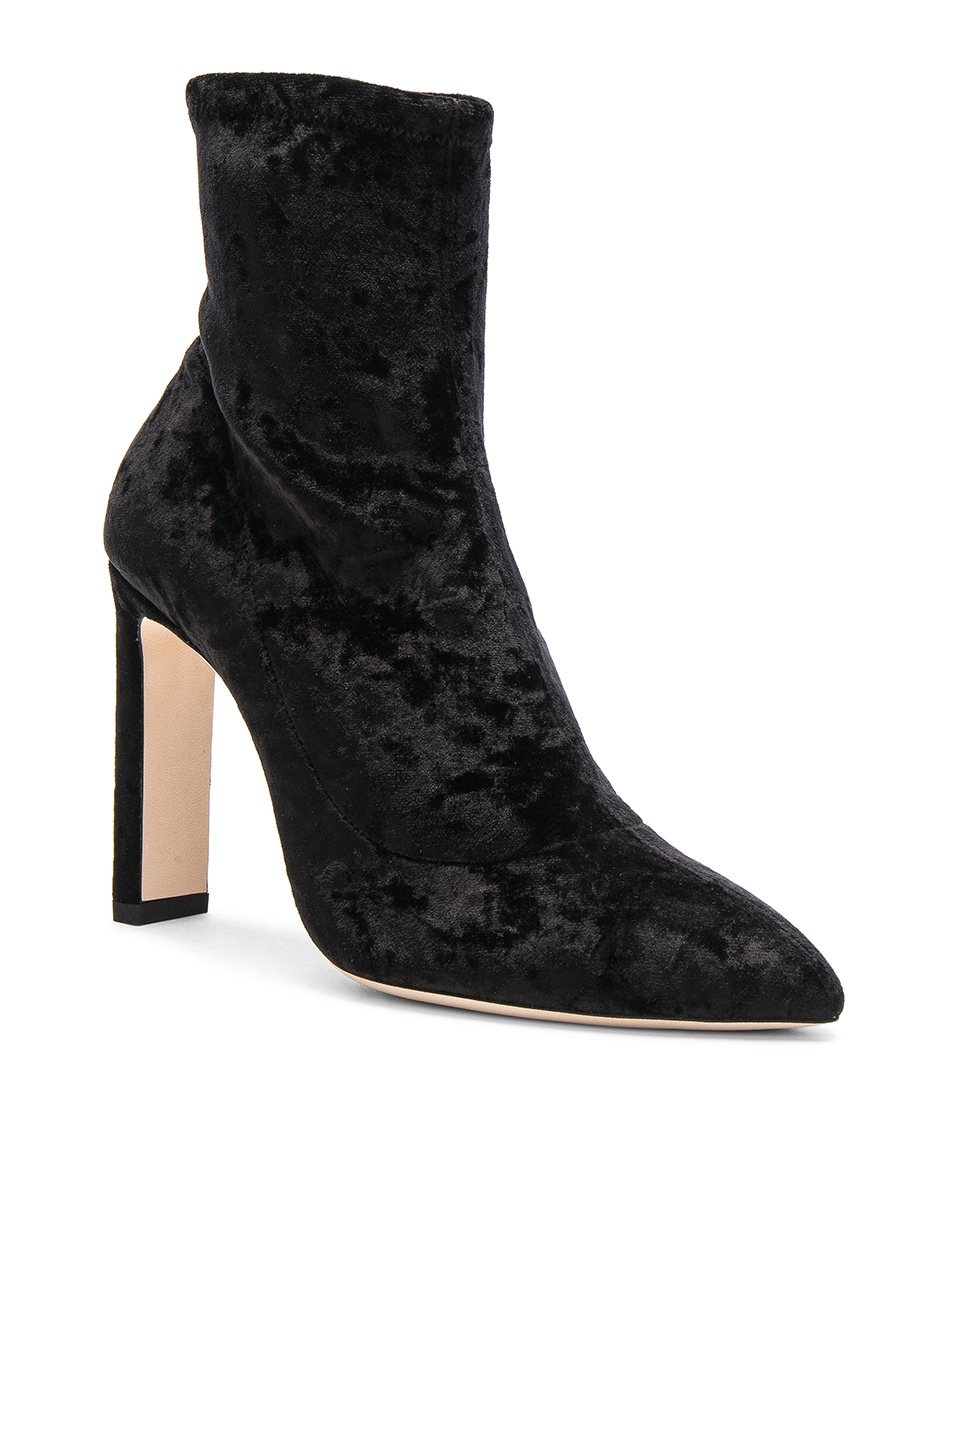 Image 2 of Jimmy Choo Louella 100 Crushed Velvet Boots in Black